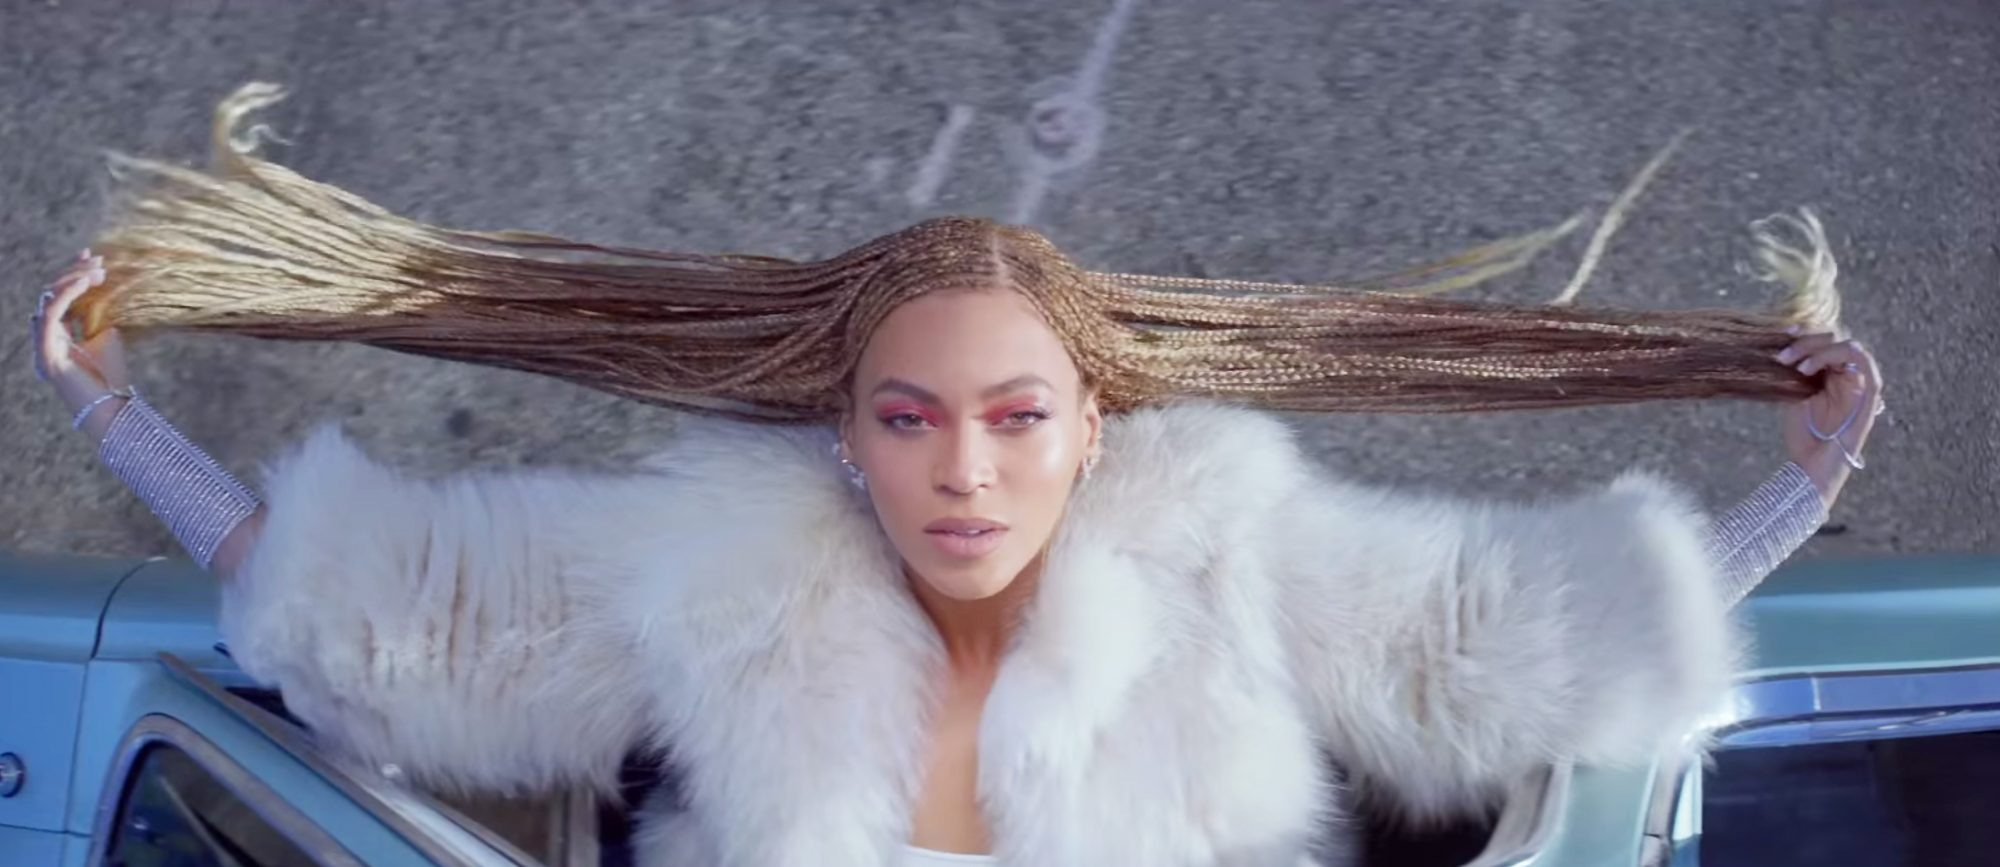 Beyonce Formation Video Beauty Lead